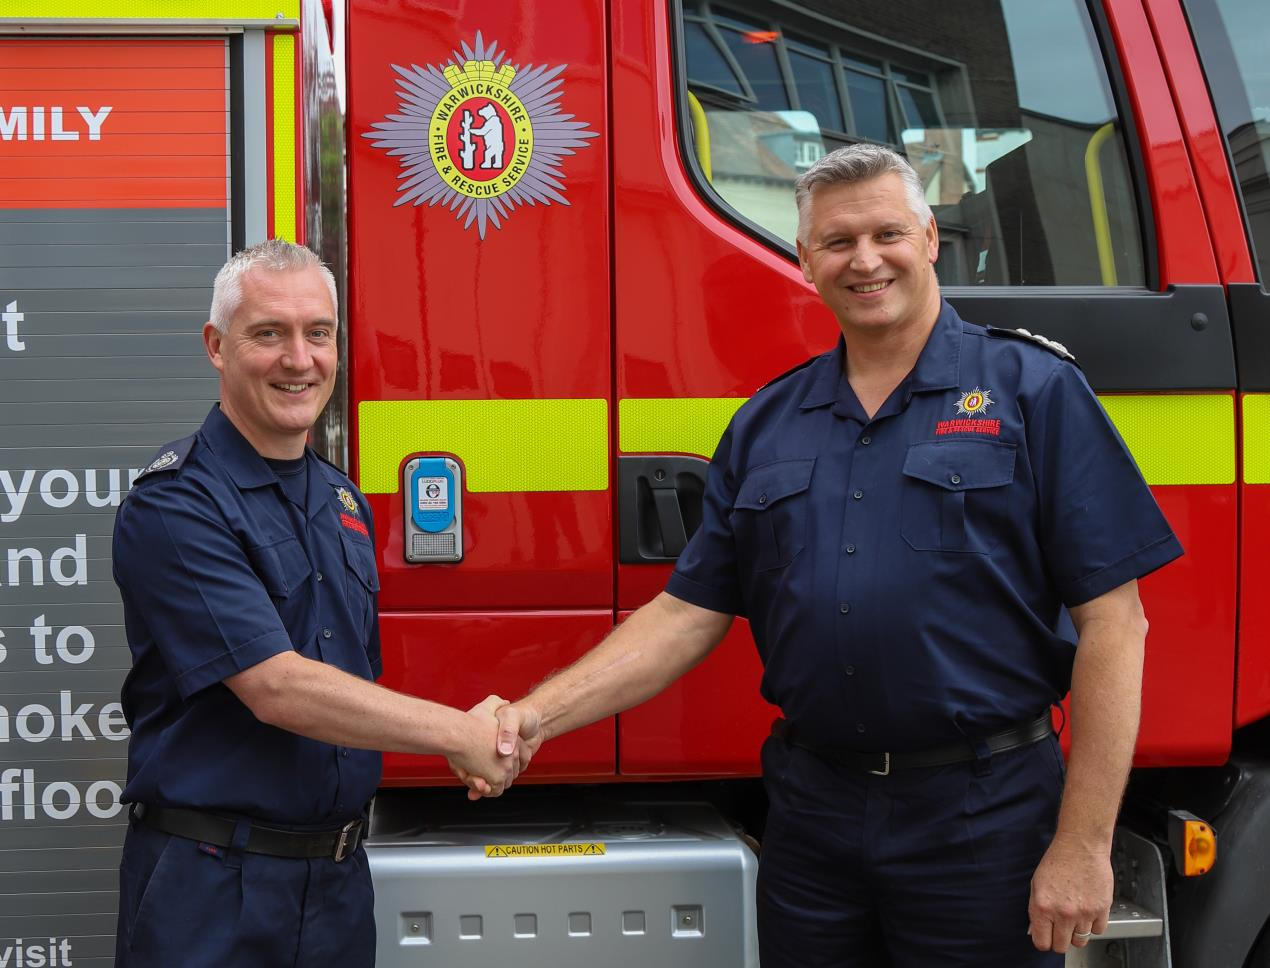 Warwickshire's Chief Fire Officer steps down